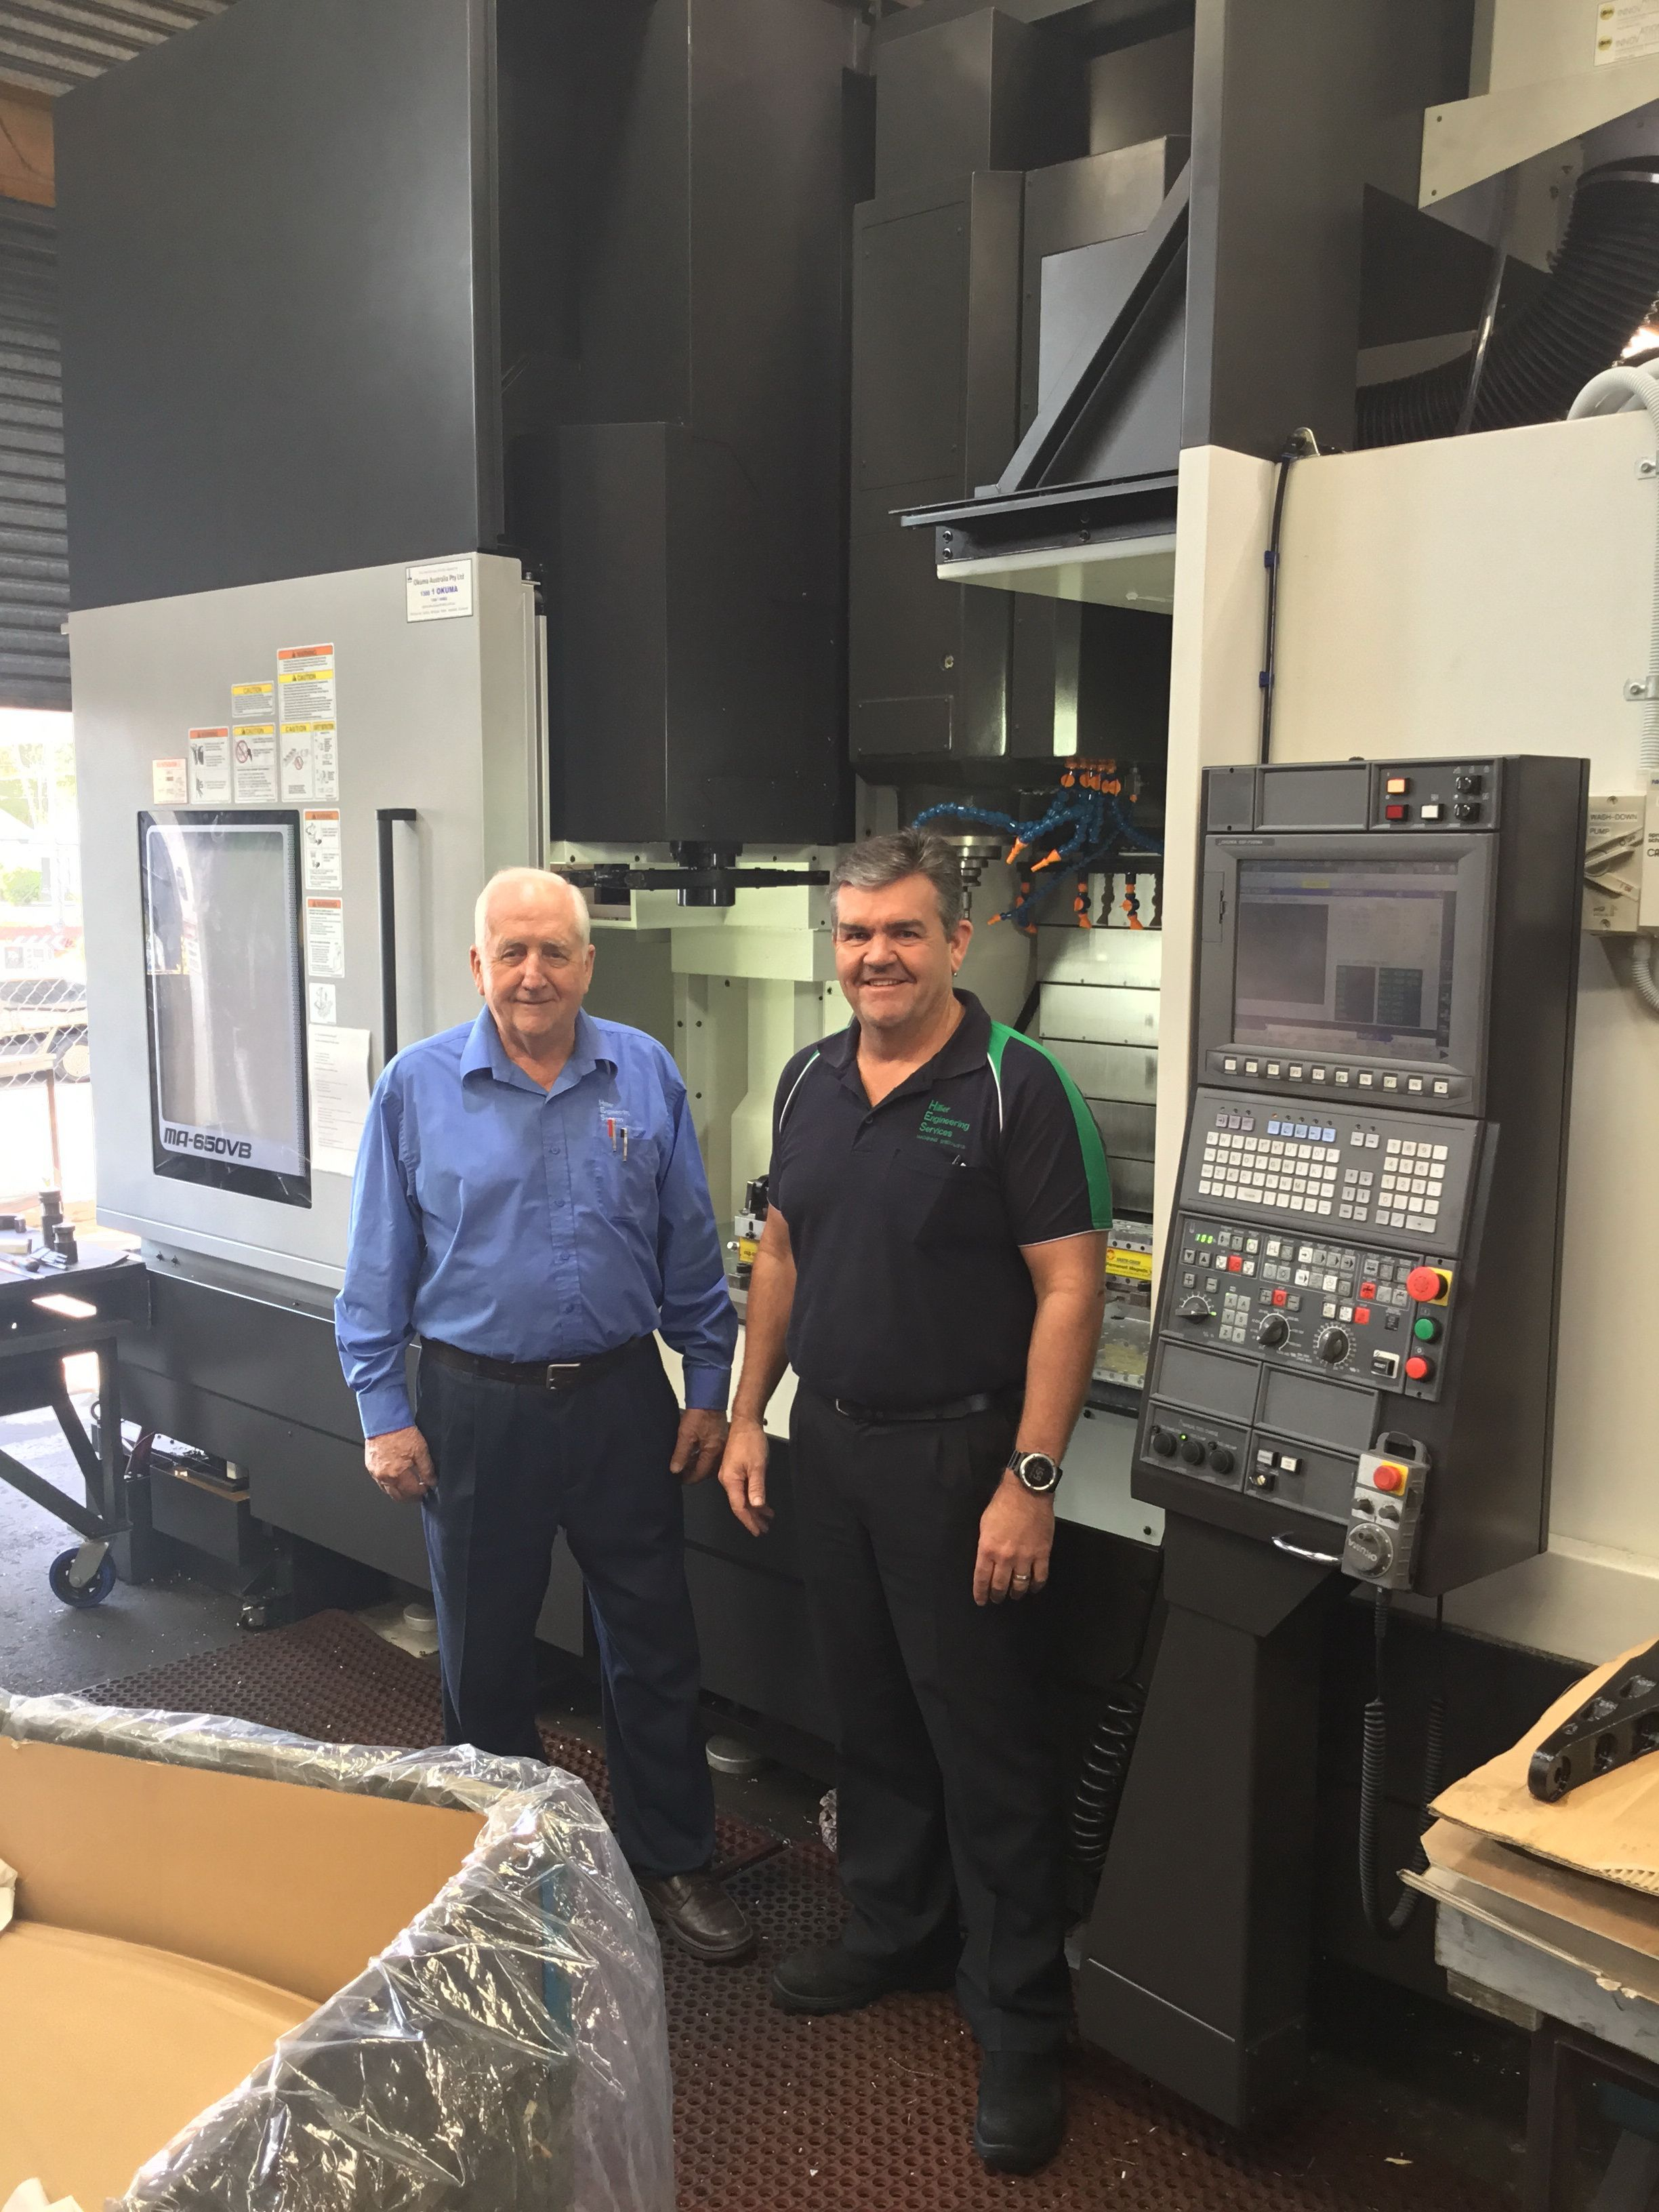 Ray Hillier (left) and John Hillier from Hillier Engineering